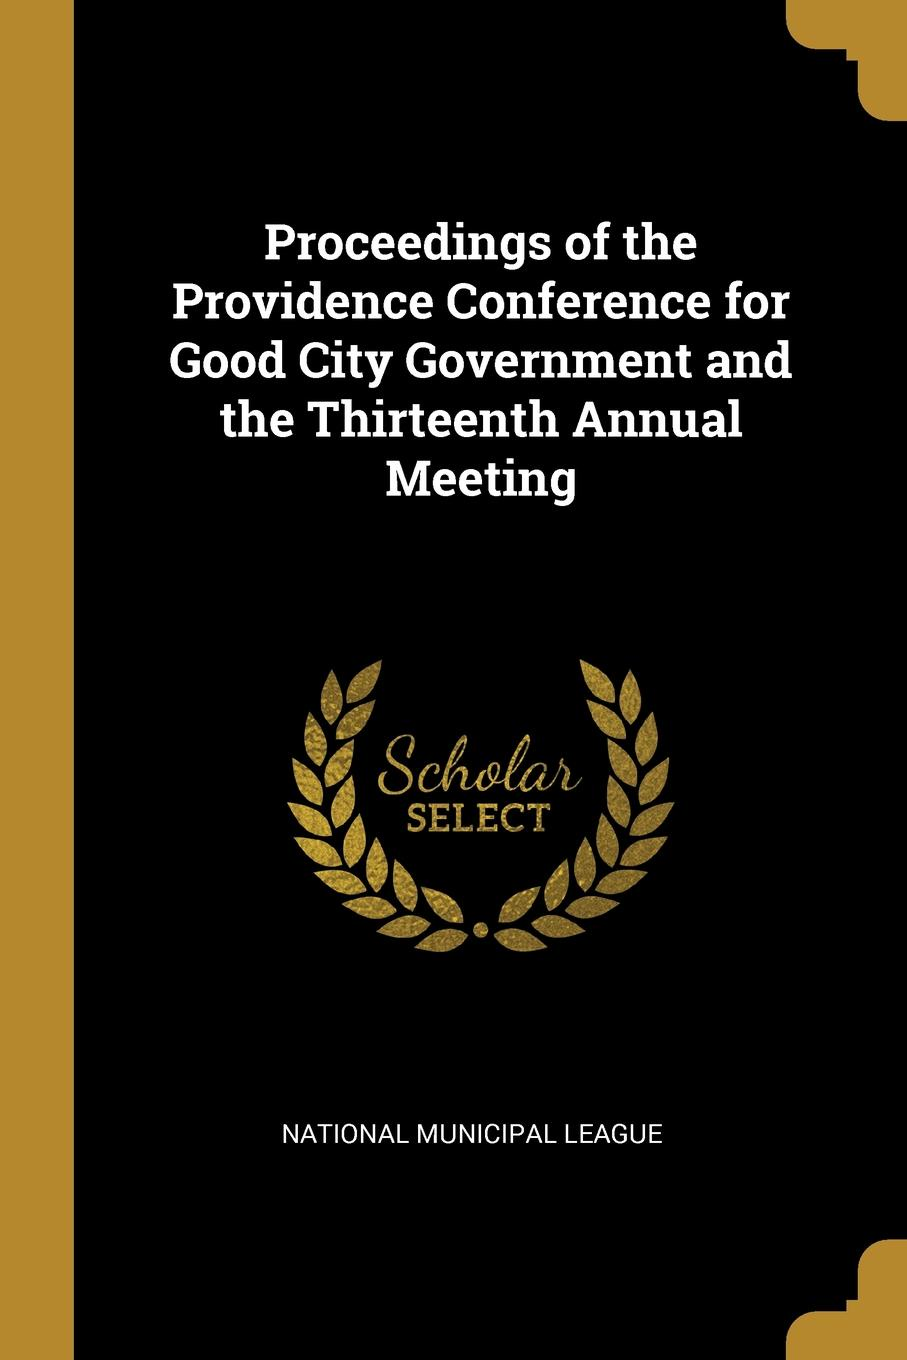 National Municipal League. Proceedings of the Providence Conference for Good City Government and the Thirteenth Annual Meeting